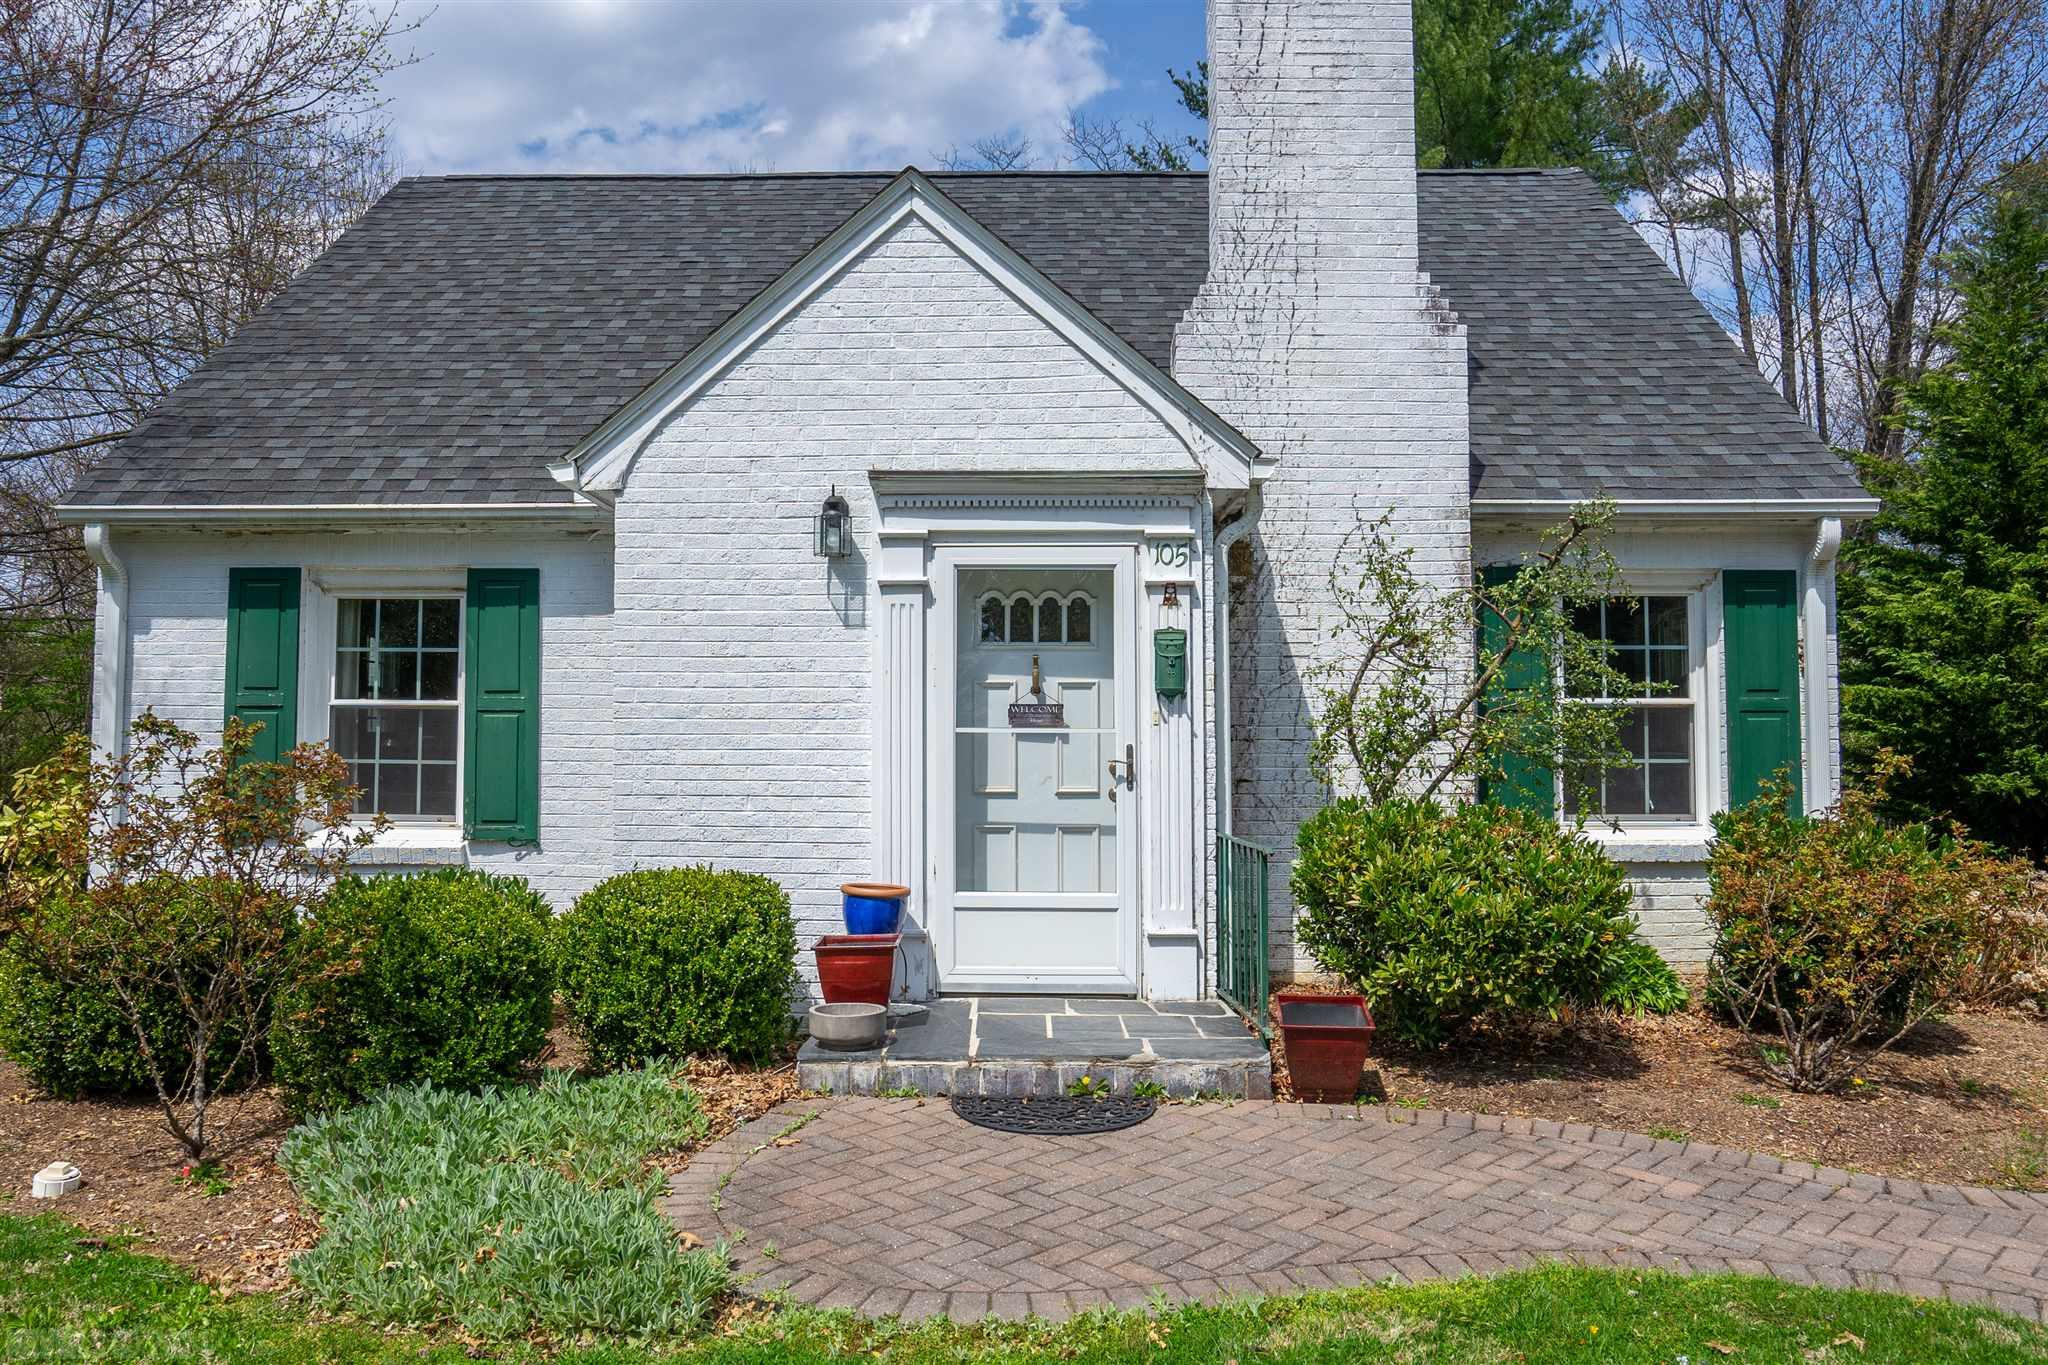 One of the cutest cottages in the town of Blacksburg, sitting on the most charming of historic streets! Located on a beautifully landscaped .3 acre lot, with plenty of room to play, garden, explore & relax, this home is super convenient to downtown and campus. Beautiful hardwood floors on both levels of this home. The main level enjoys a living room, kitchen, dining room, 1 bedrooms & a full bath. Built ins throughout add charm & character. Upstairs you will find 2 additional rooms and another full bath. Recently replaced windows make future maintenance a pleasure. In today's market, we know this won't last long!